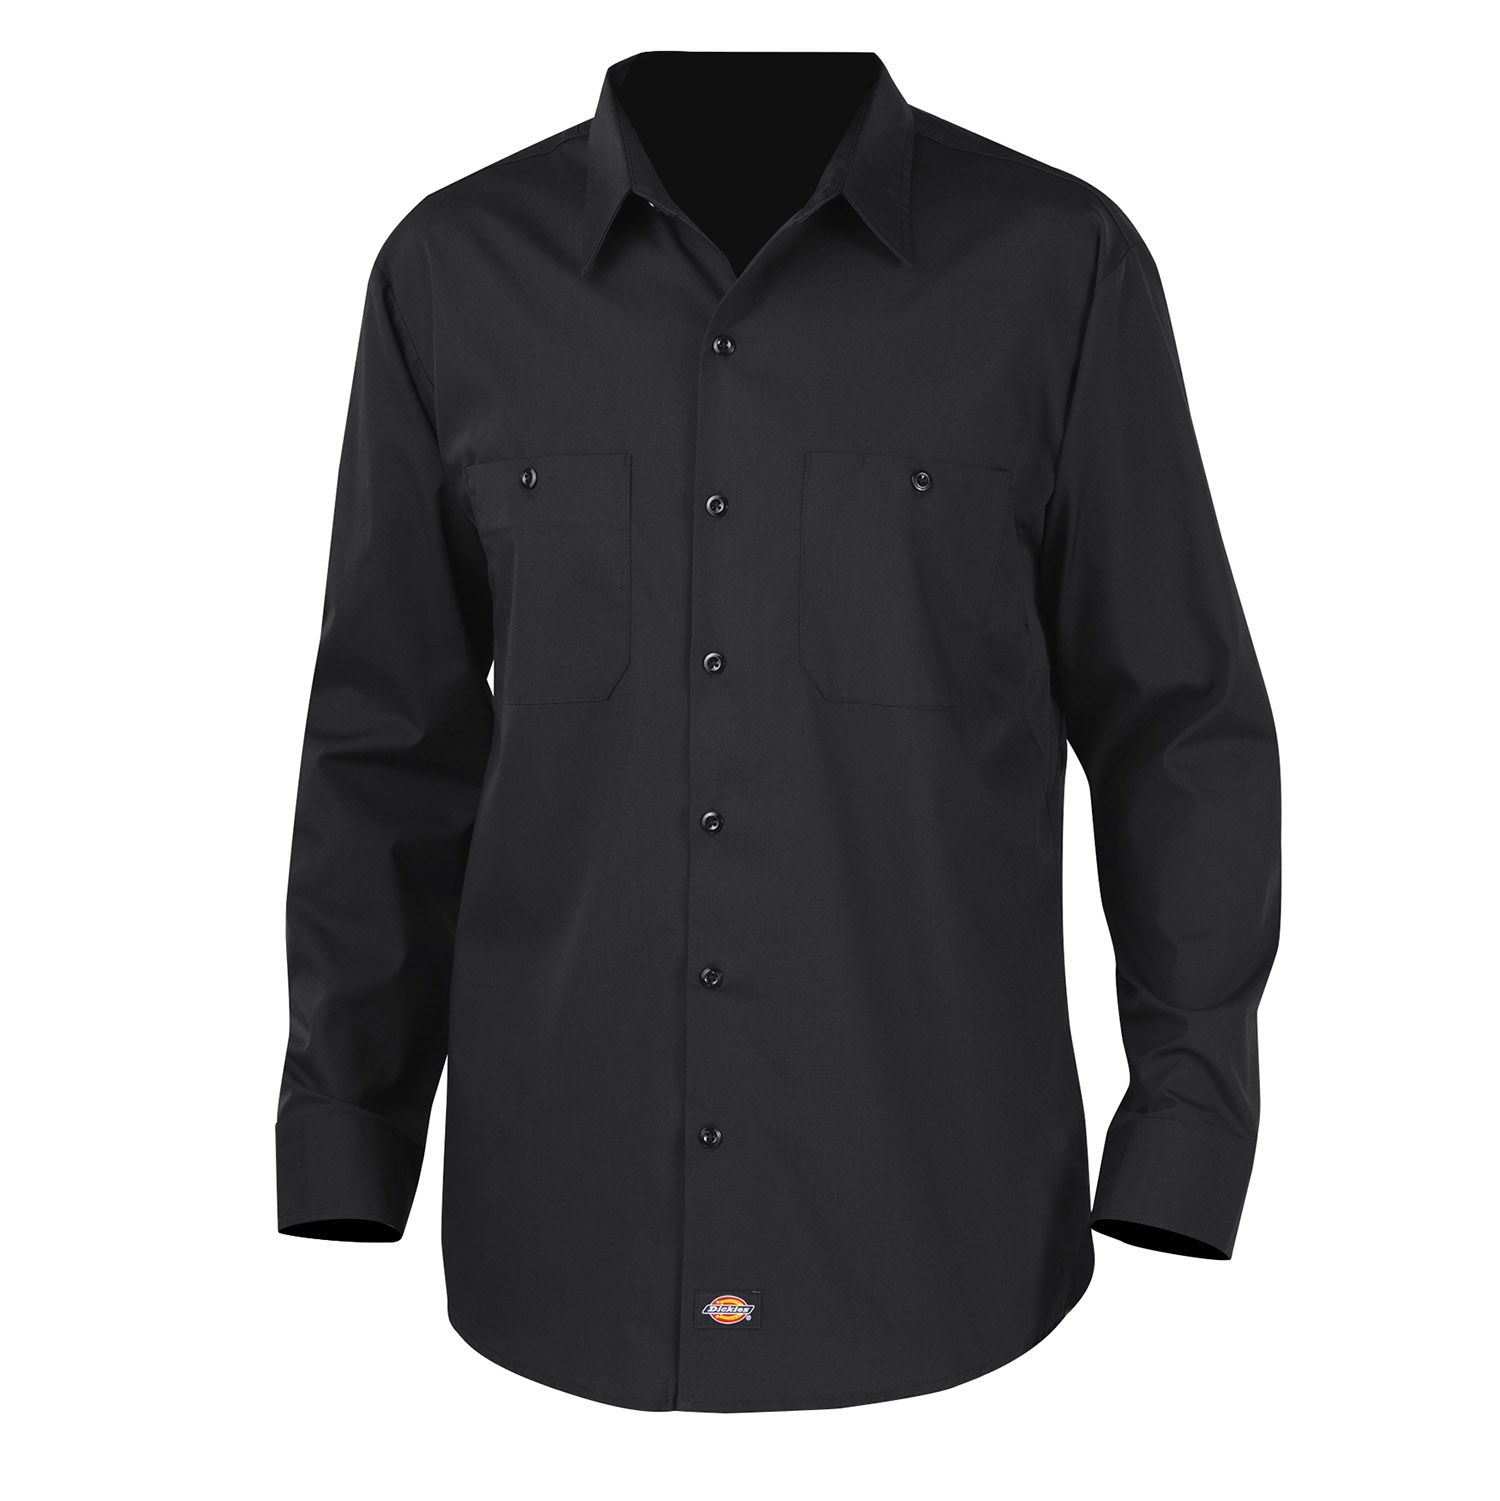 Dickies WorkTech Long Sleeve Premium Ventilated Performance